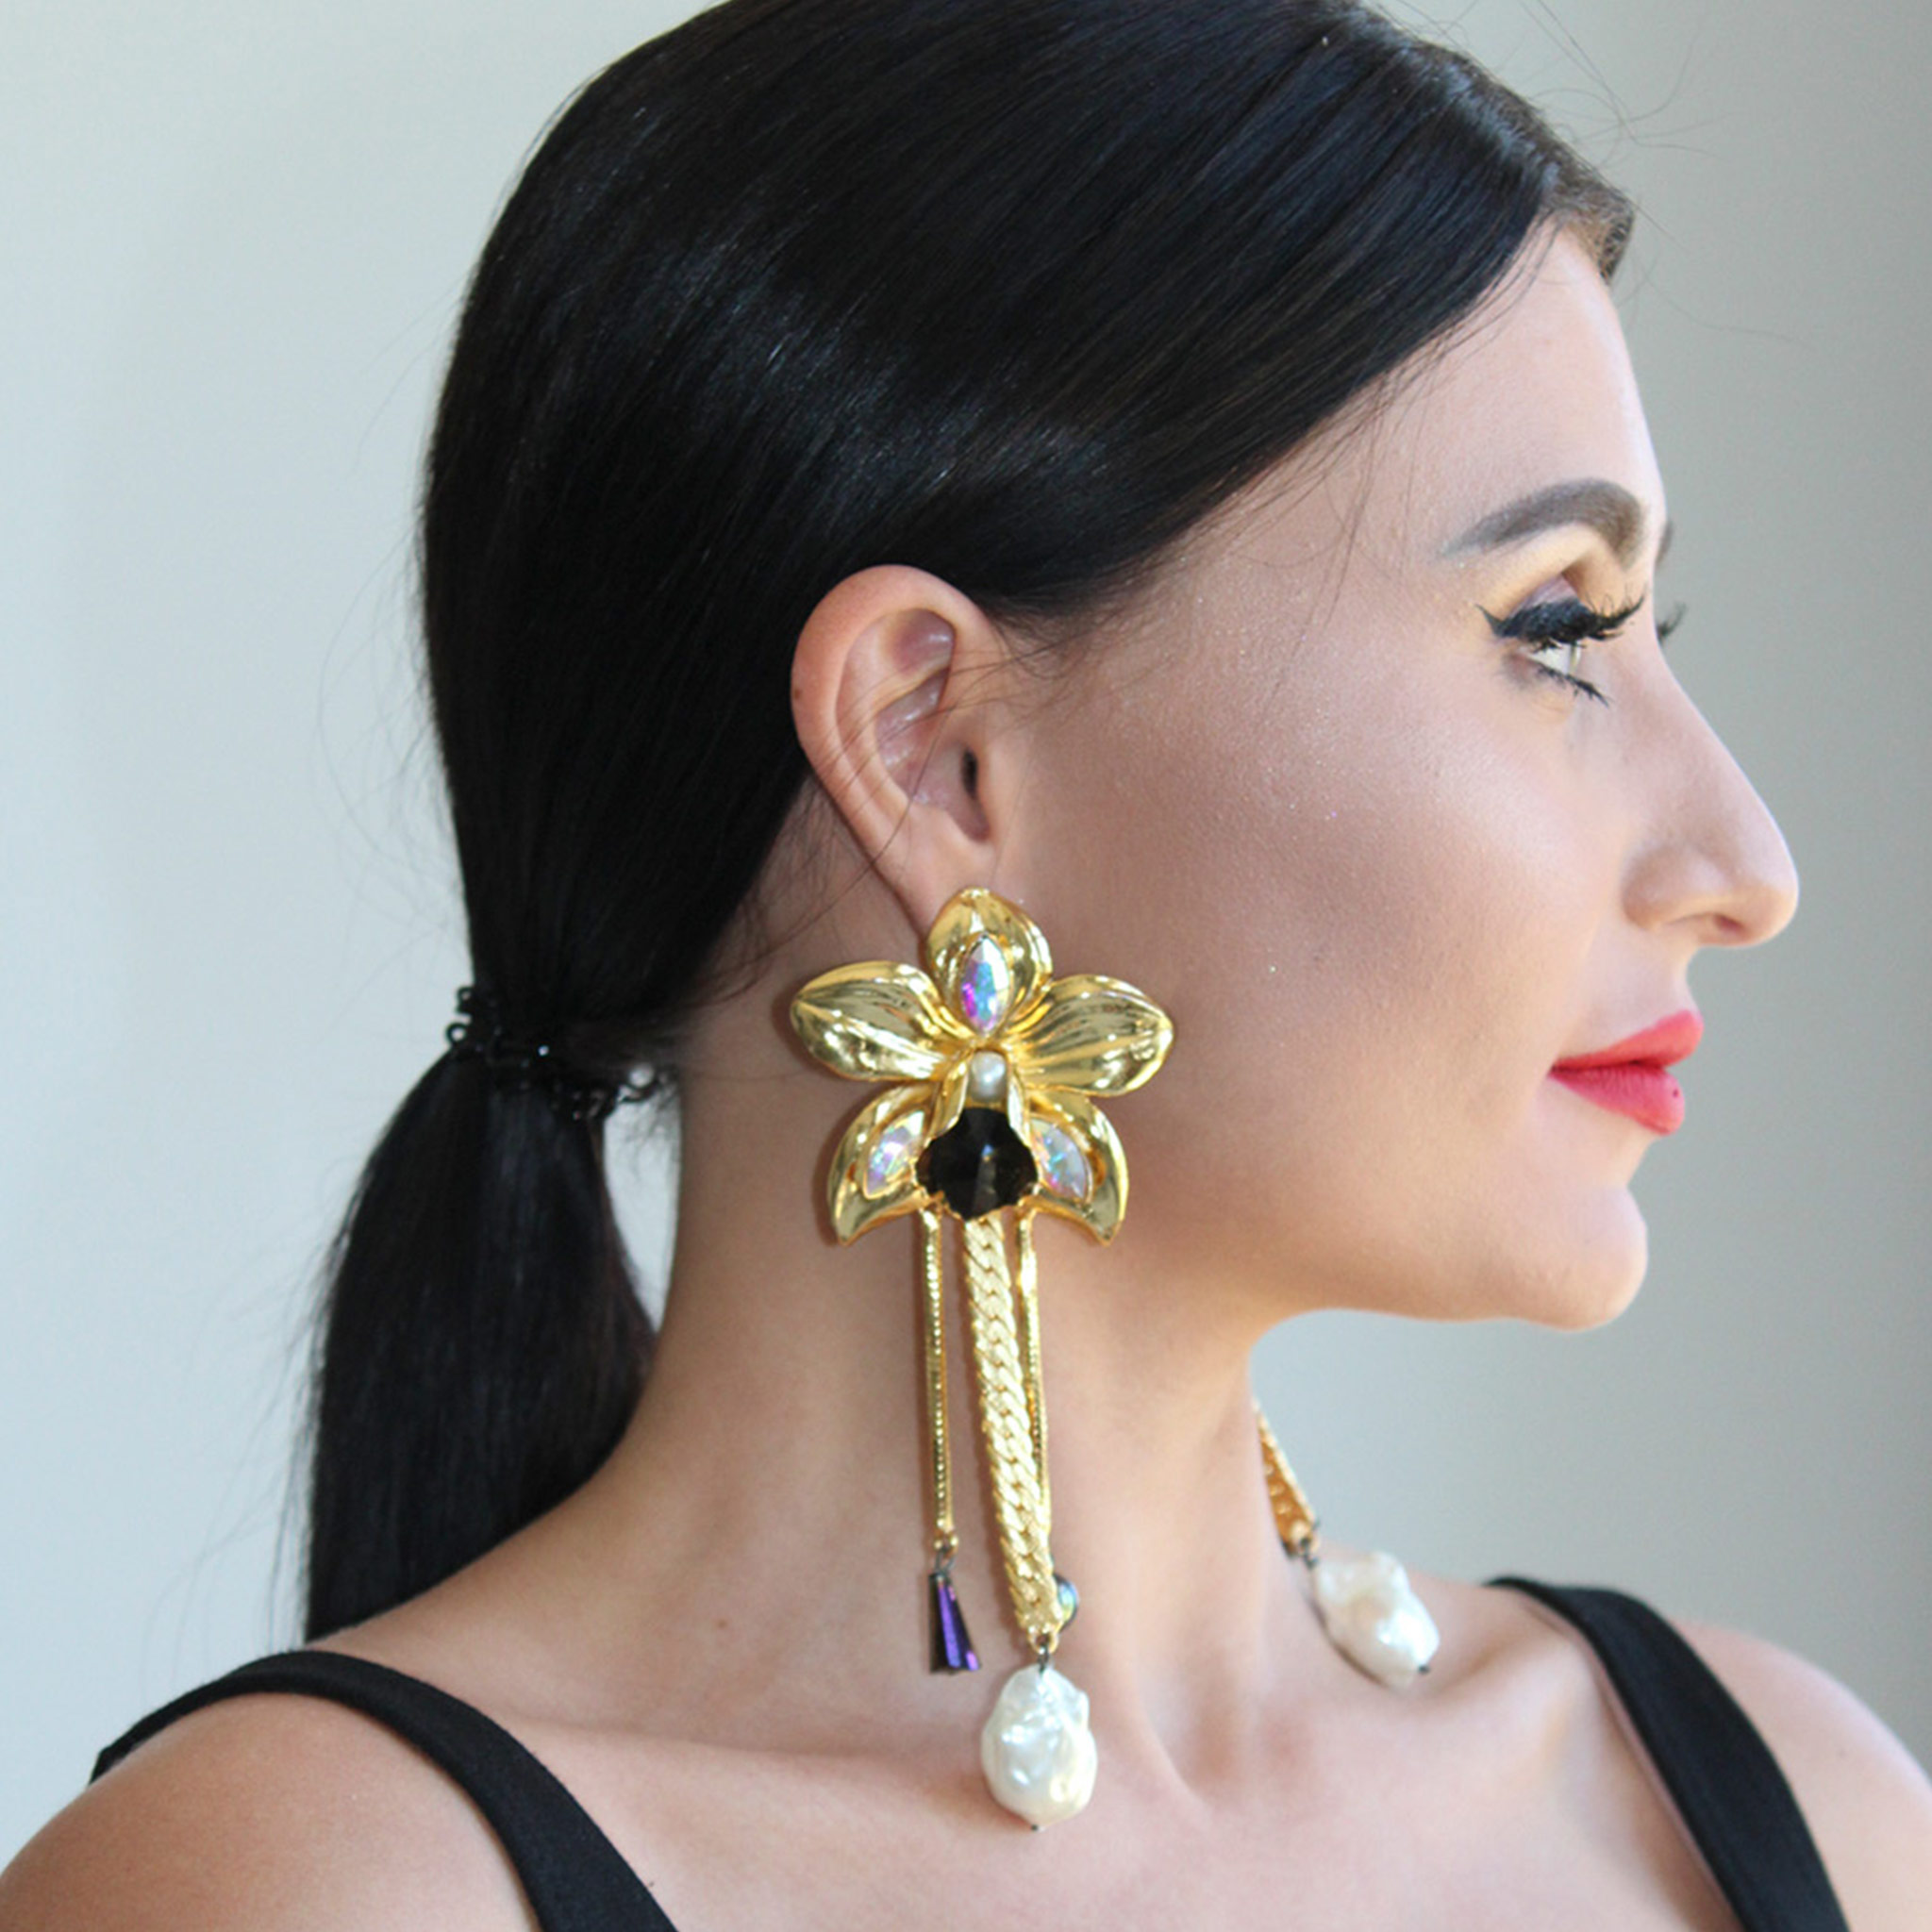 Valliyan 18K Gold Plated Wild Orchid Earrings